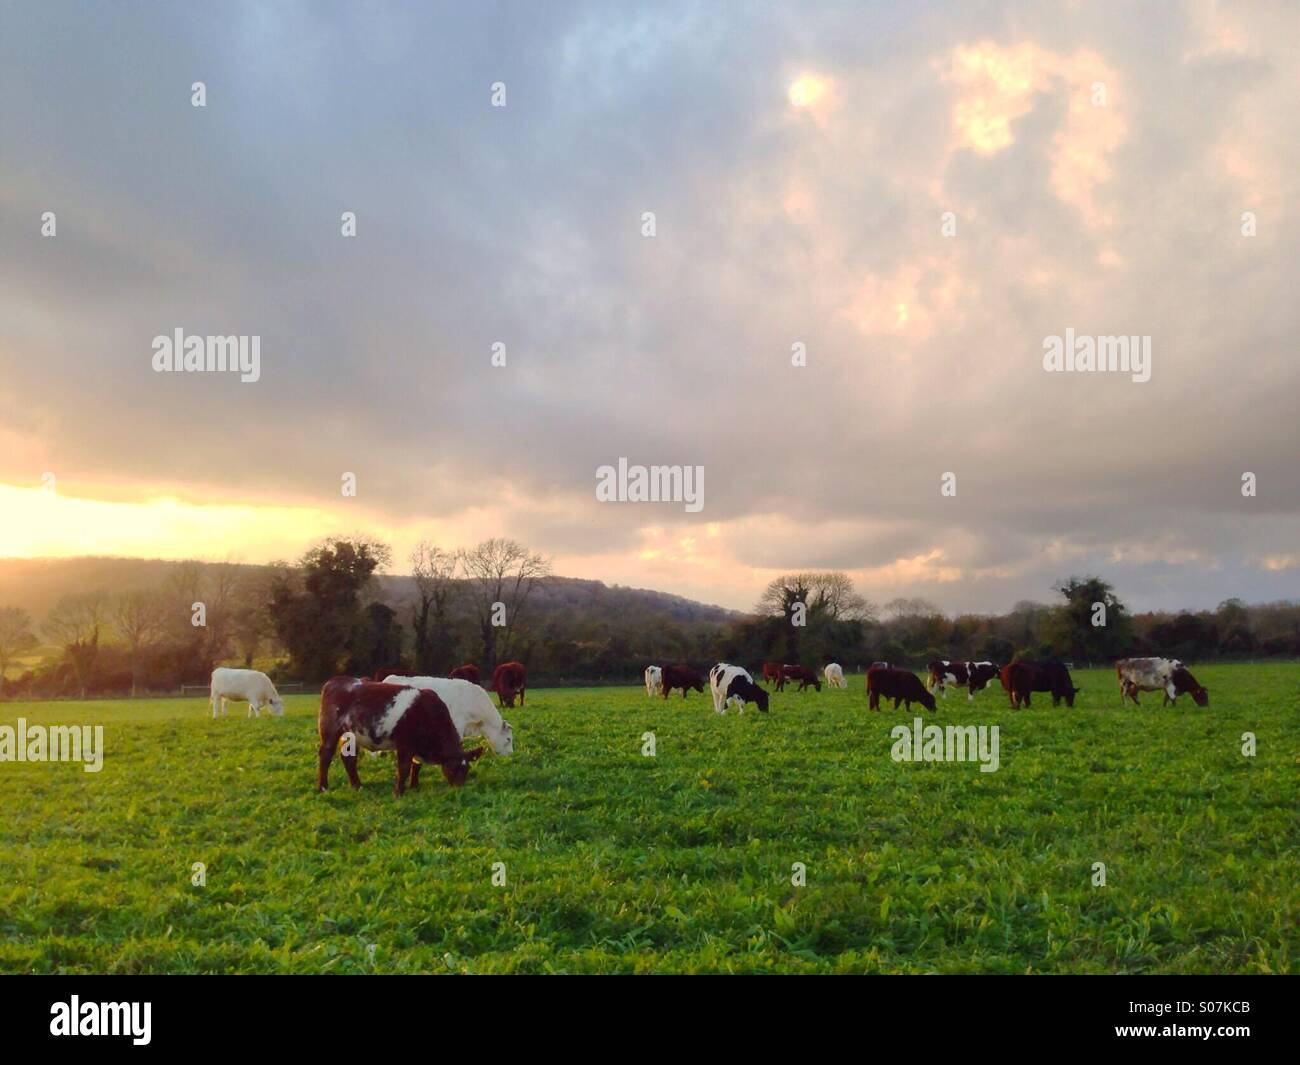 Traditional cattle breeds grazing rough downland in the evening sun. Stock Photo